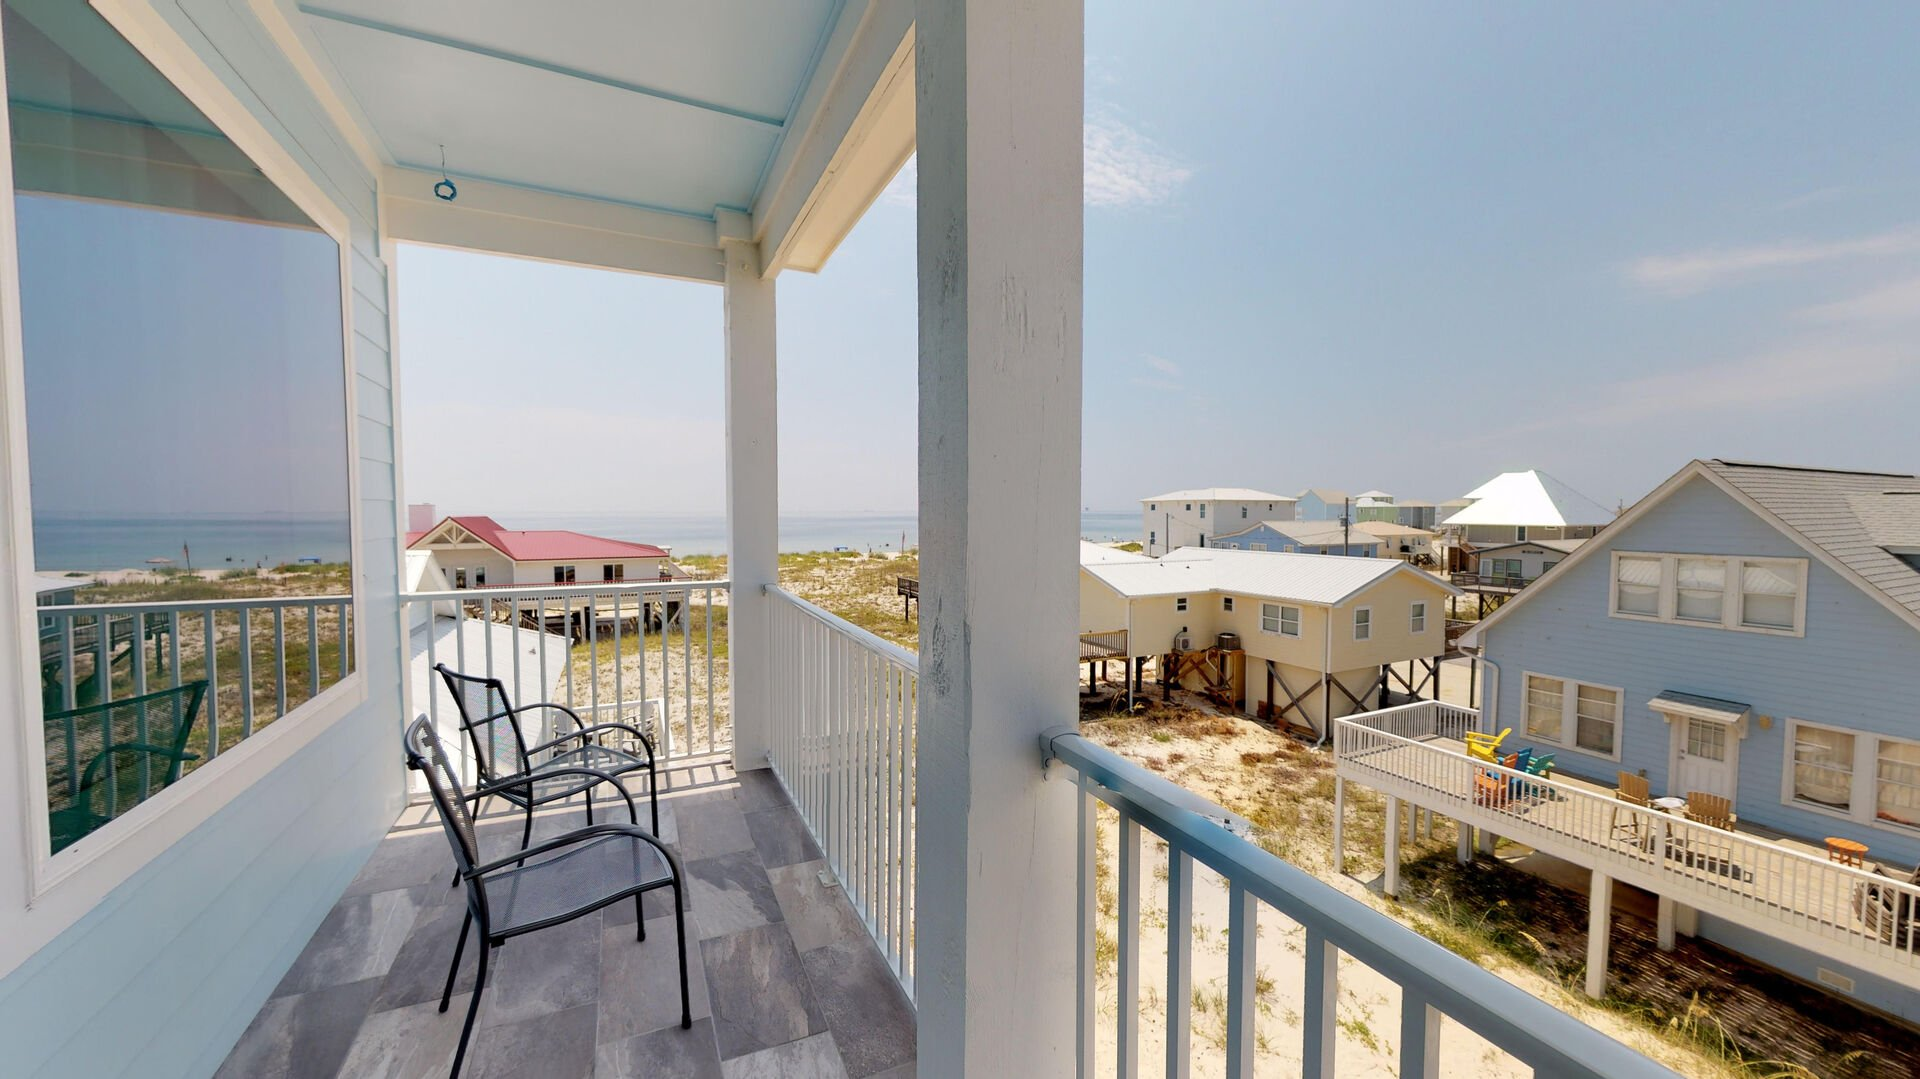 Enjoy a sunset from the spacious deck of this Vacation Home in Gulf Shores!